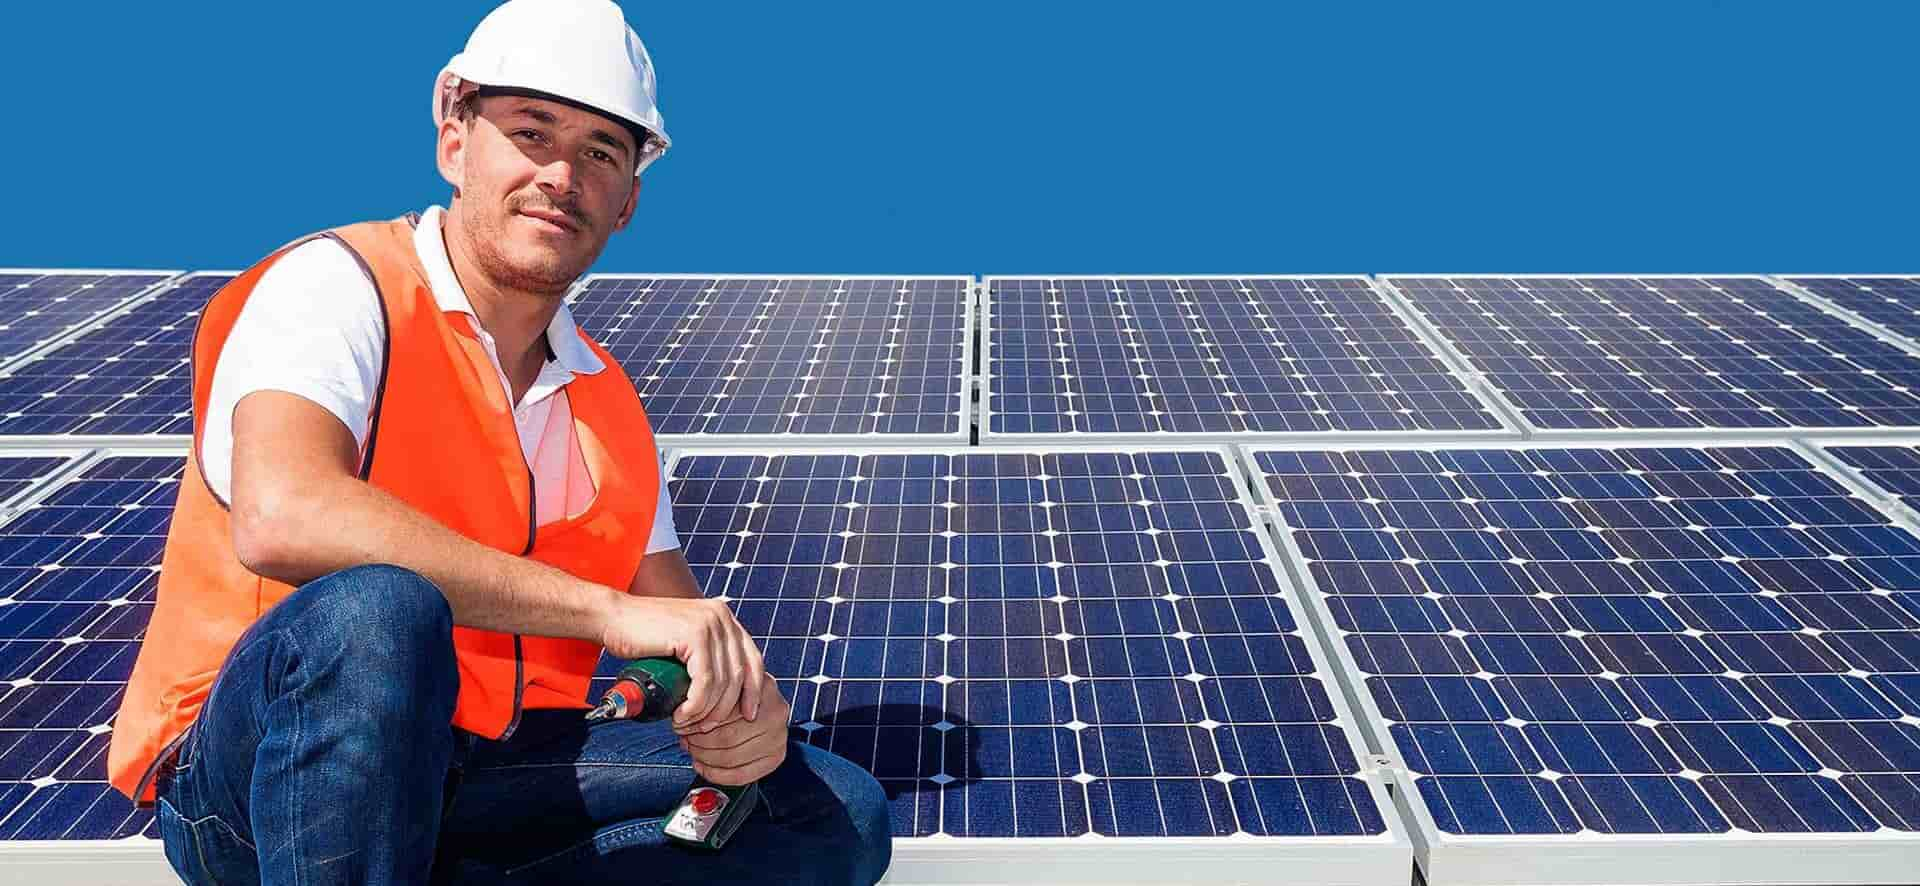 What are the Benefits of Building Solar Panels?